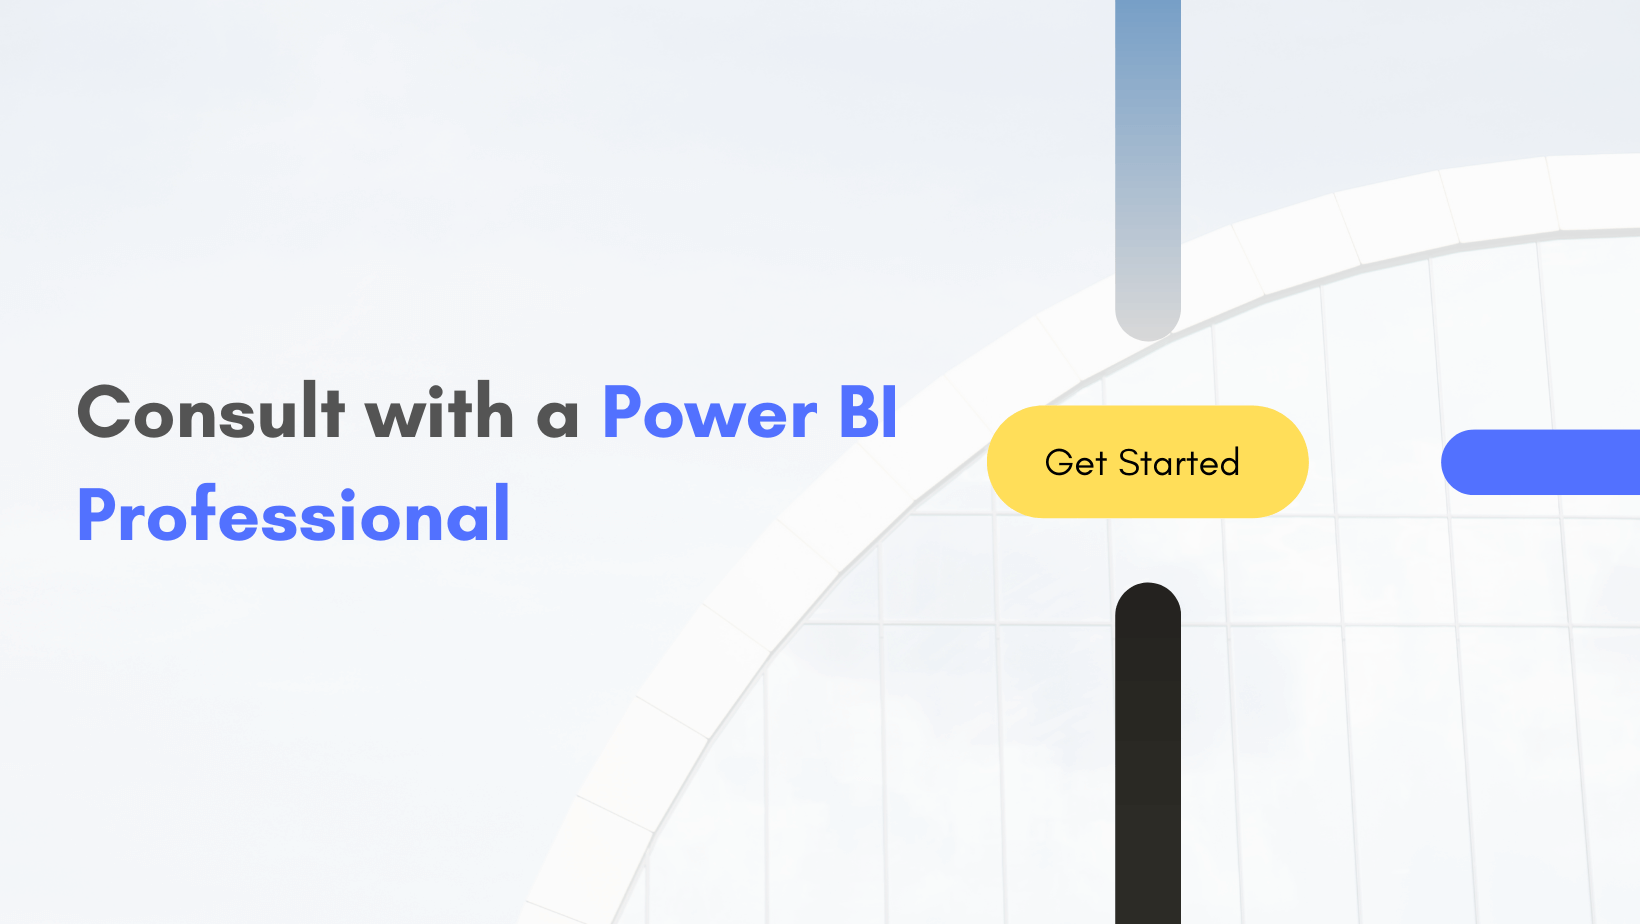 Connect with a Power BI Expert